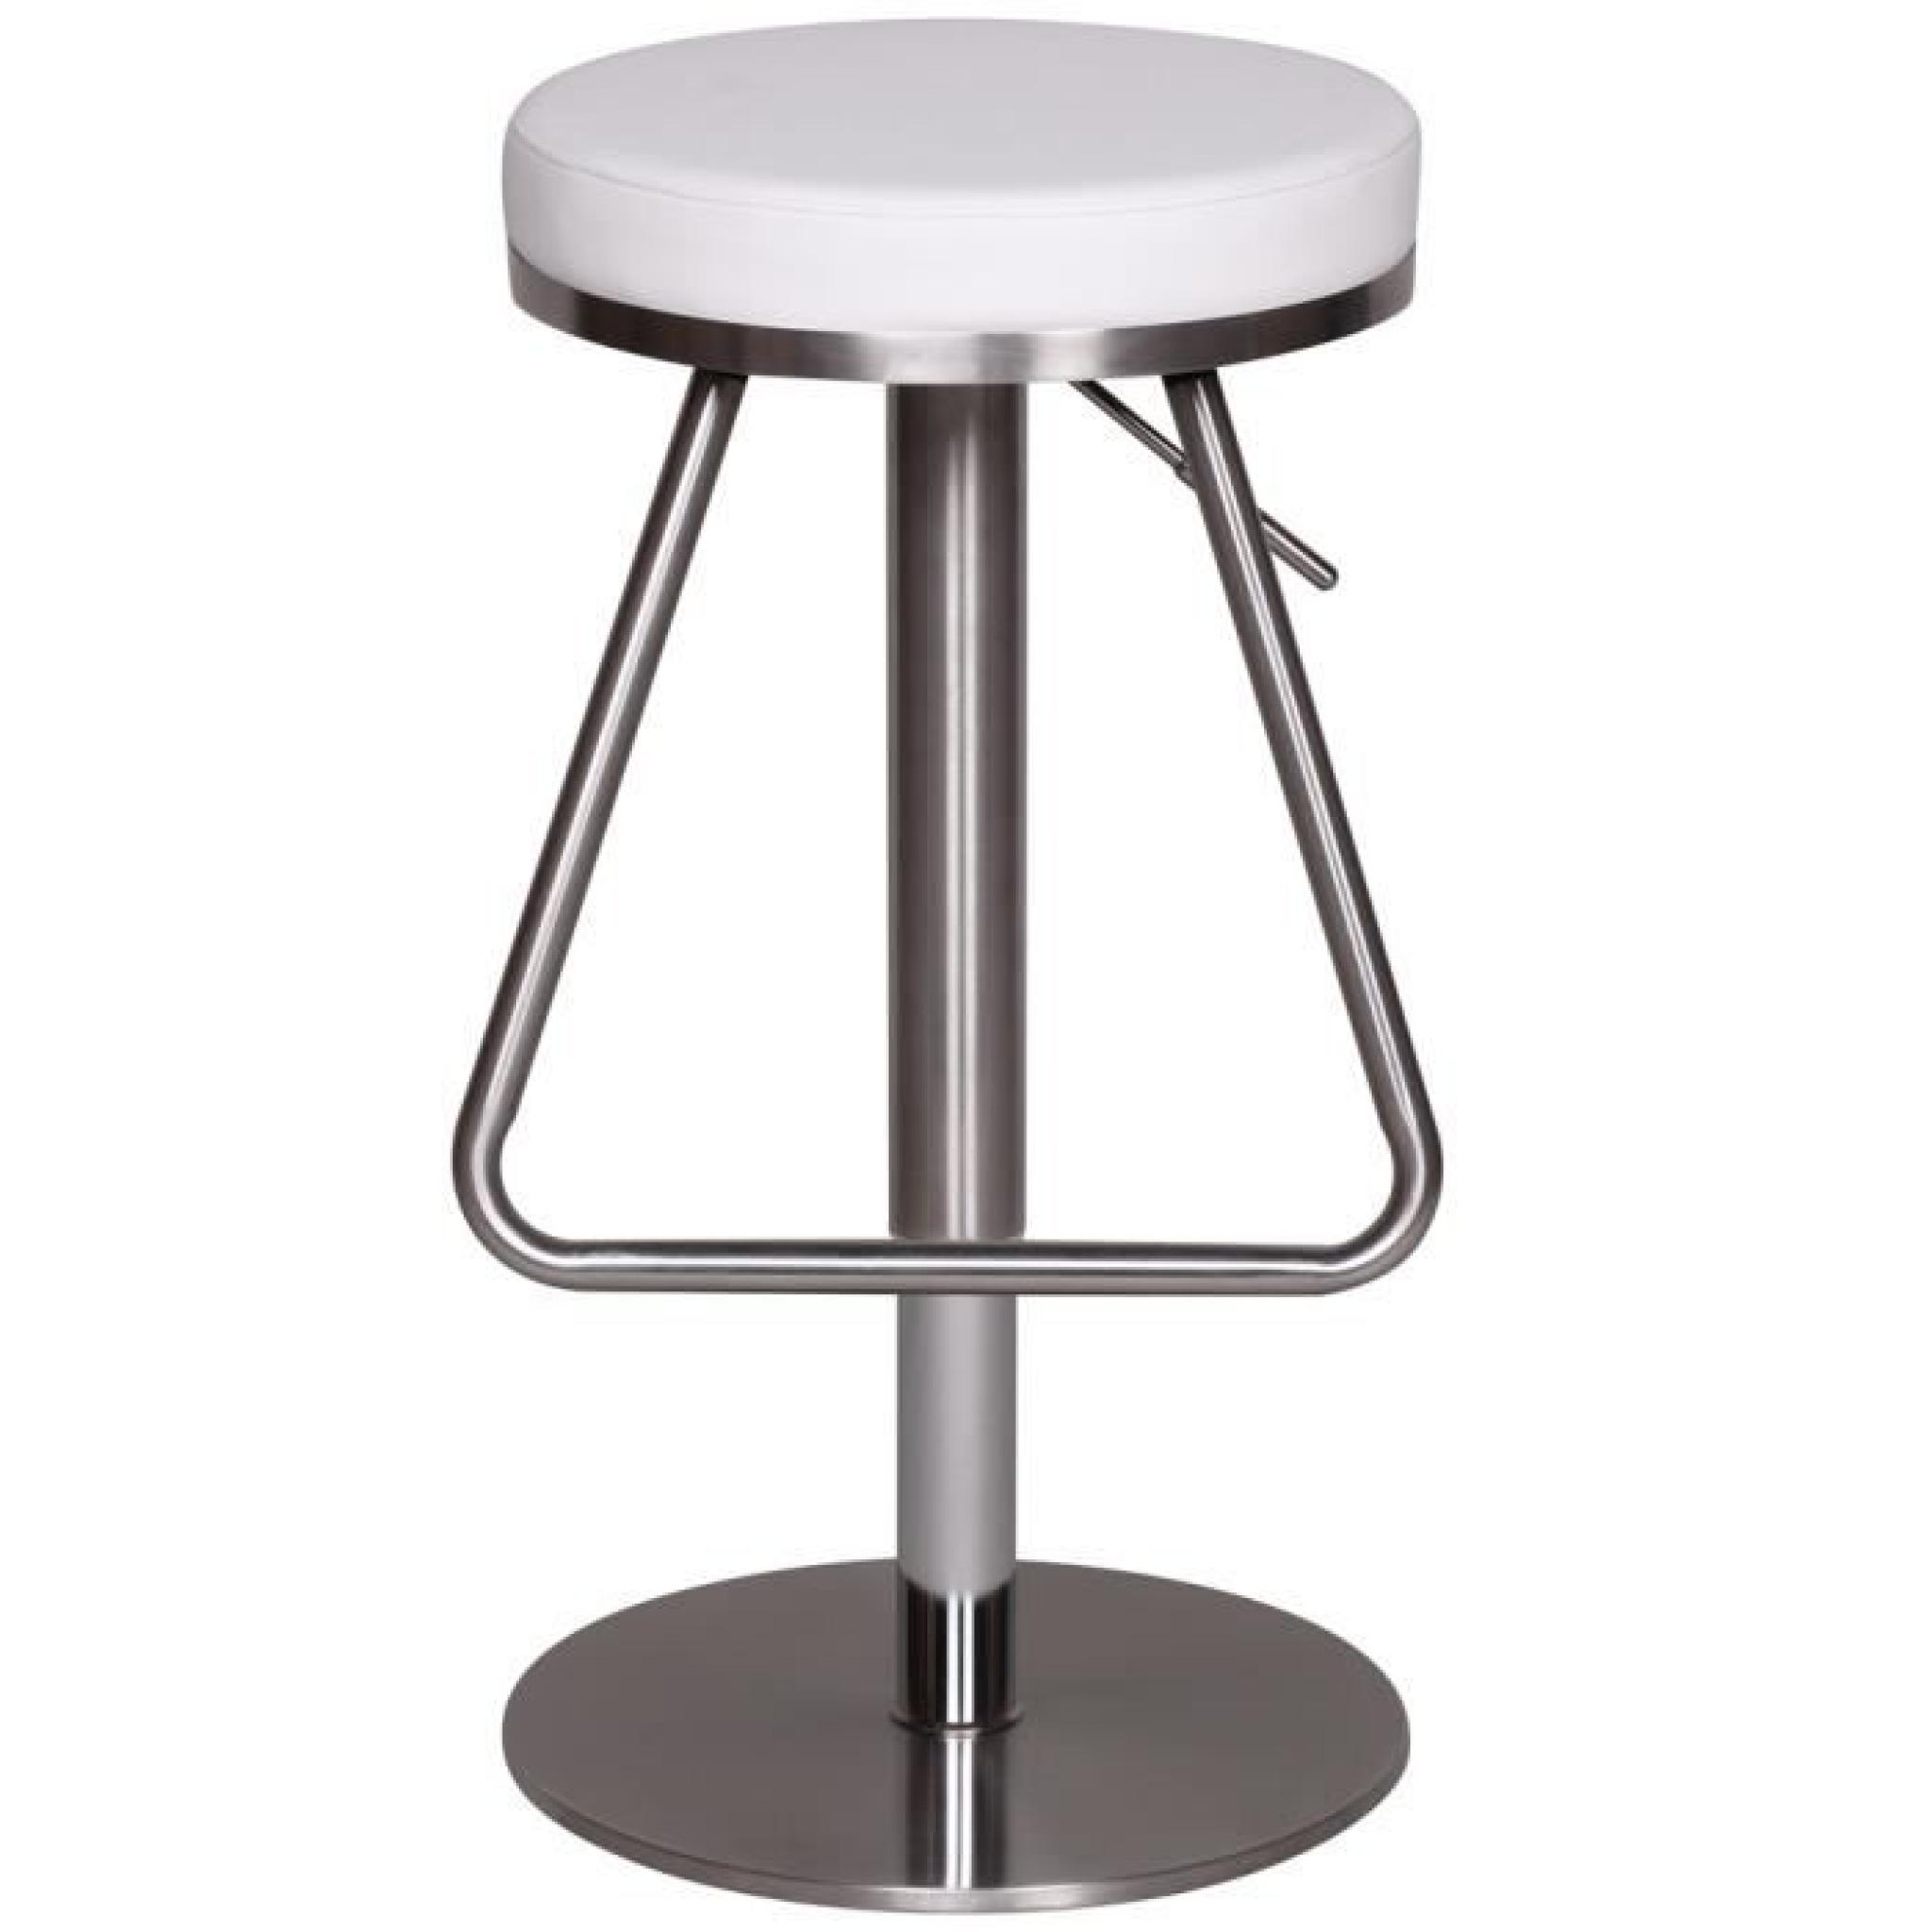 tabouret de bar en acier inoxydable bross couleur noire h 76 cm achat vente tabouret de bar. Black Bedroom Furniture Sets. Home Design Ideas